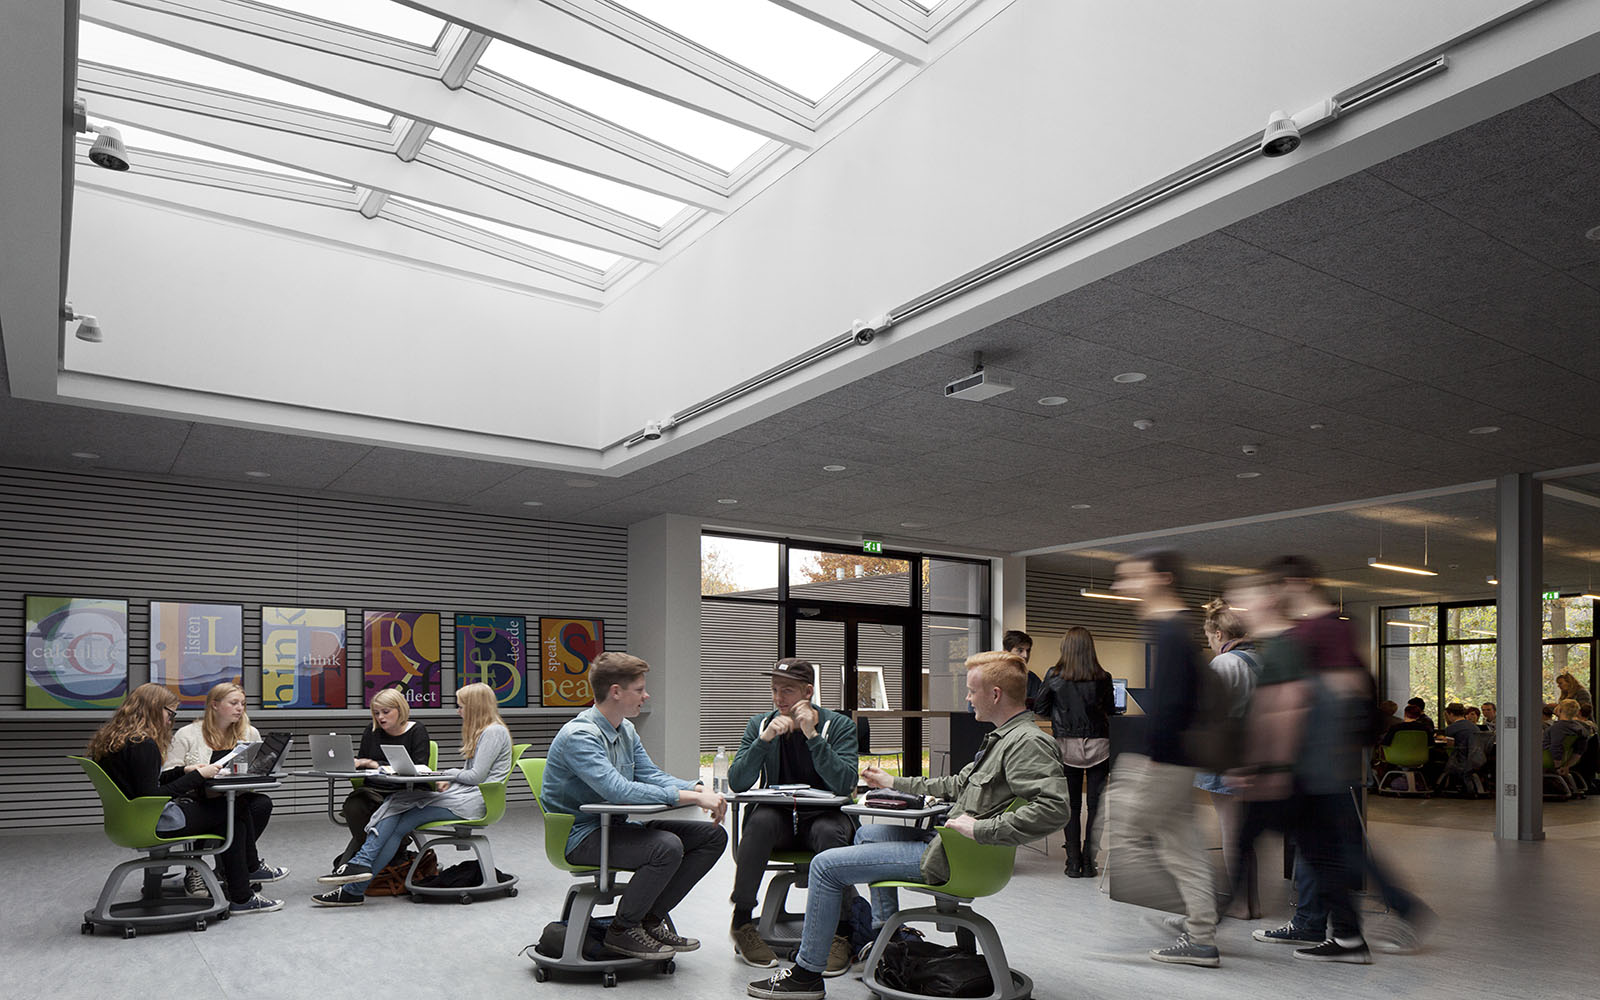 School design with daylight and skylights